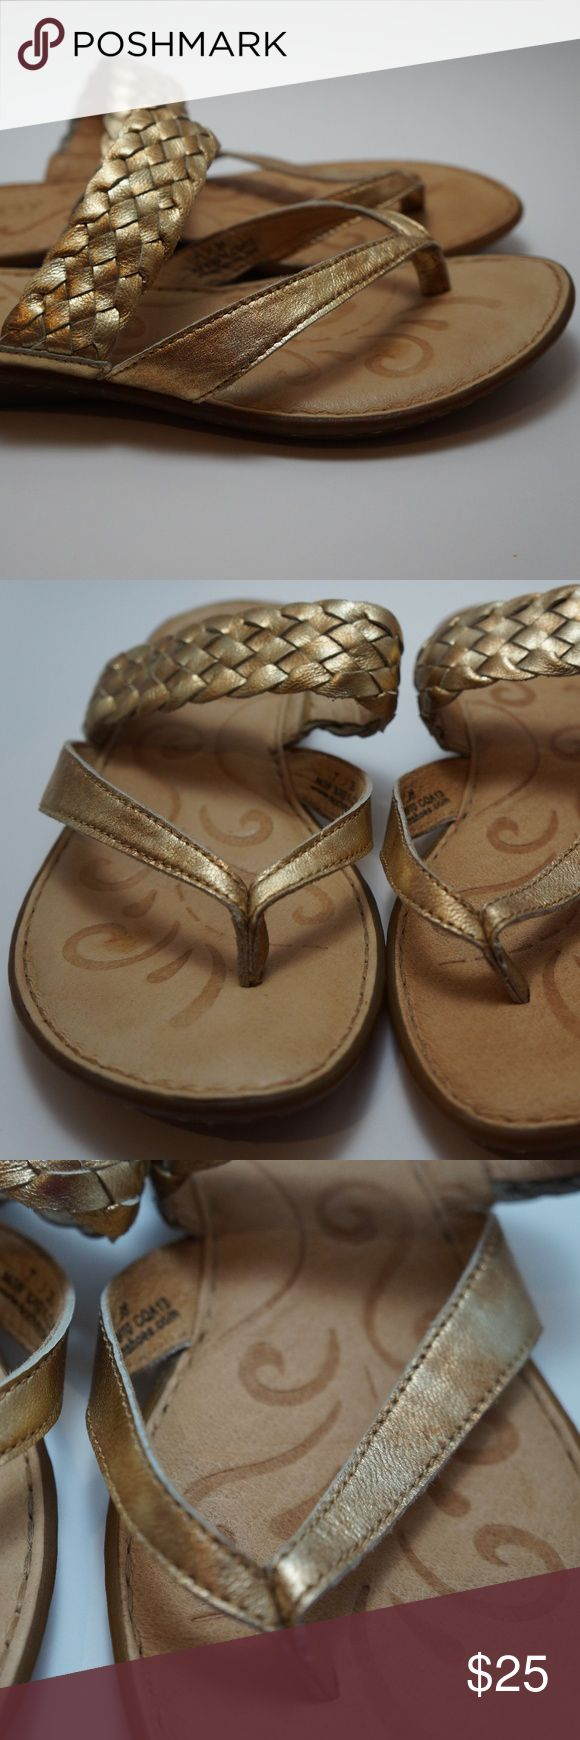 Born gold braided flip flop sandal 7 Beautiful gently used Born sandal. Pretty gold braided detail. Very gently worn, soles and insole shave some wear. Very cute and comfy. Size women's 7. Born Shoes Sandals